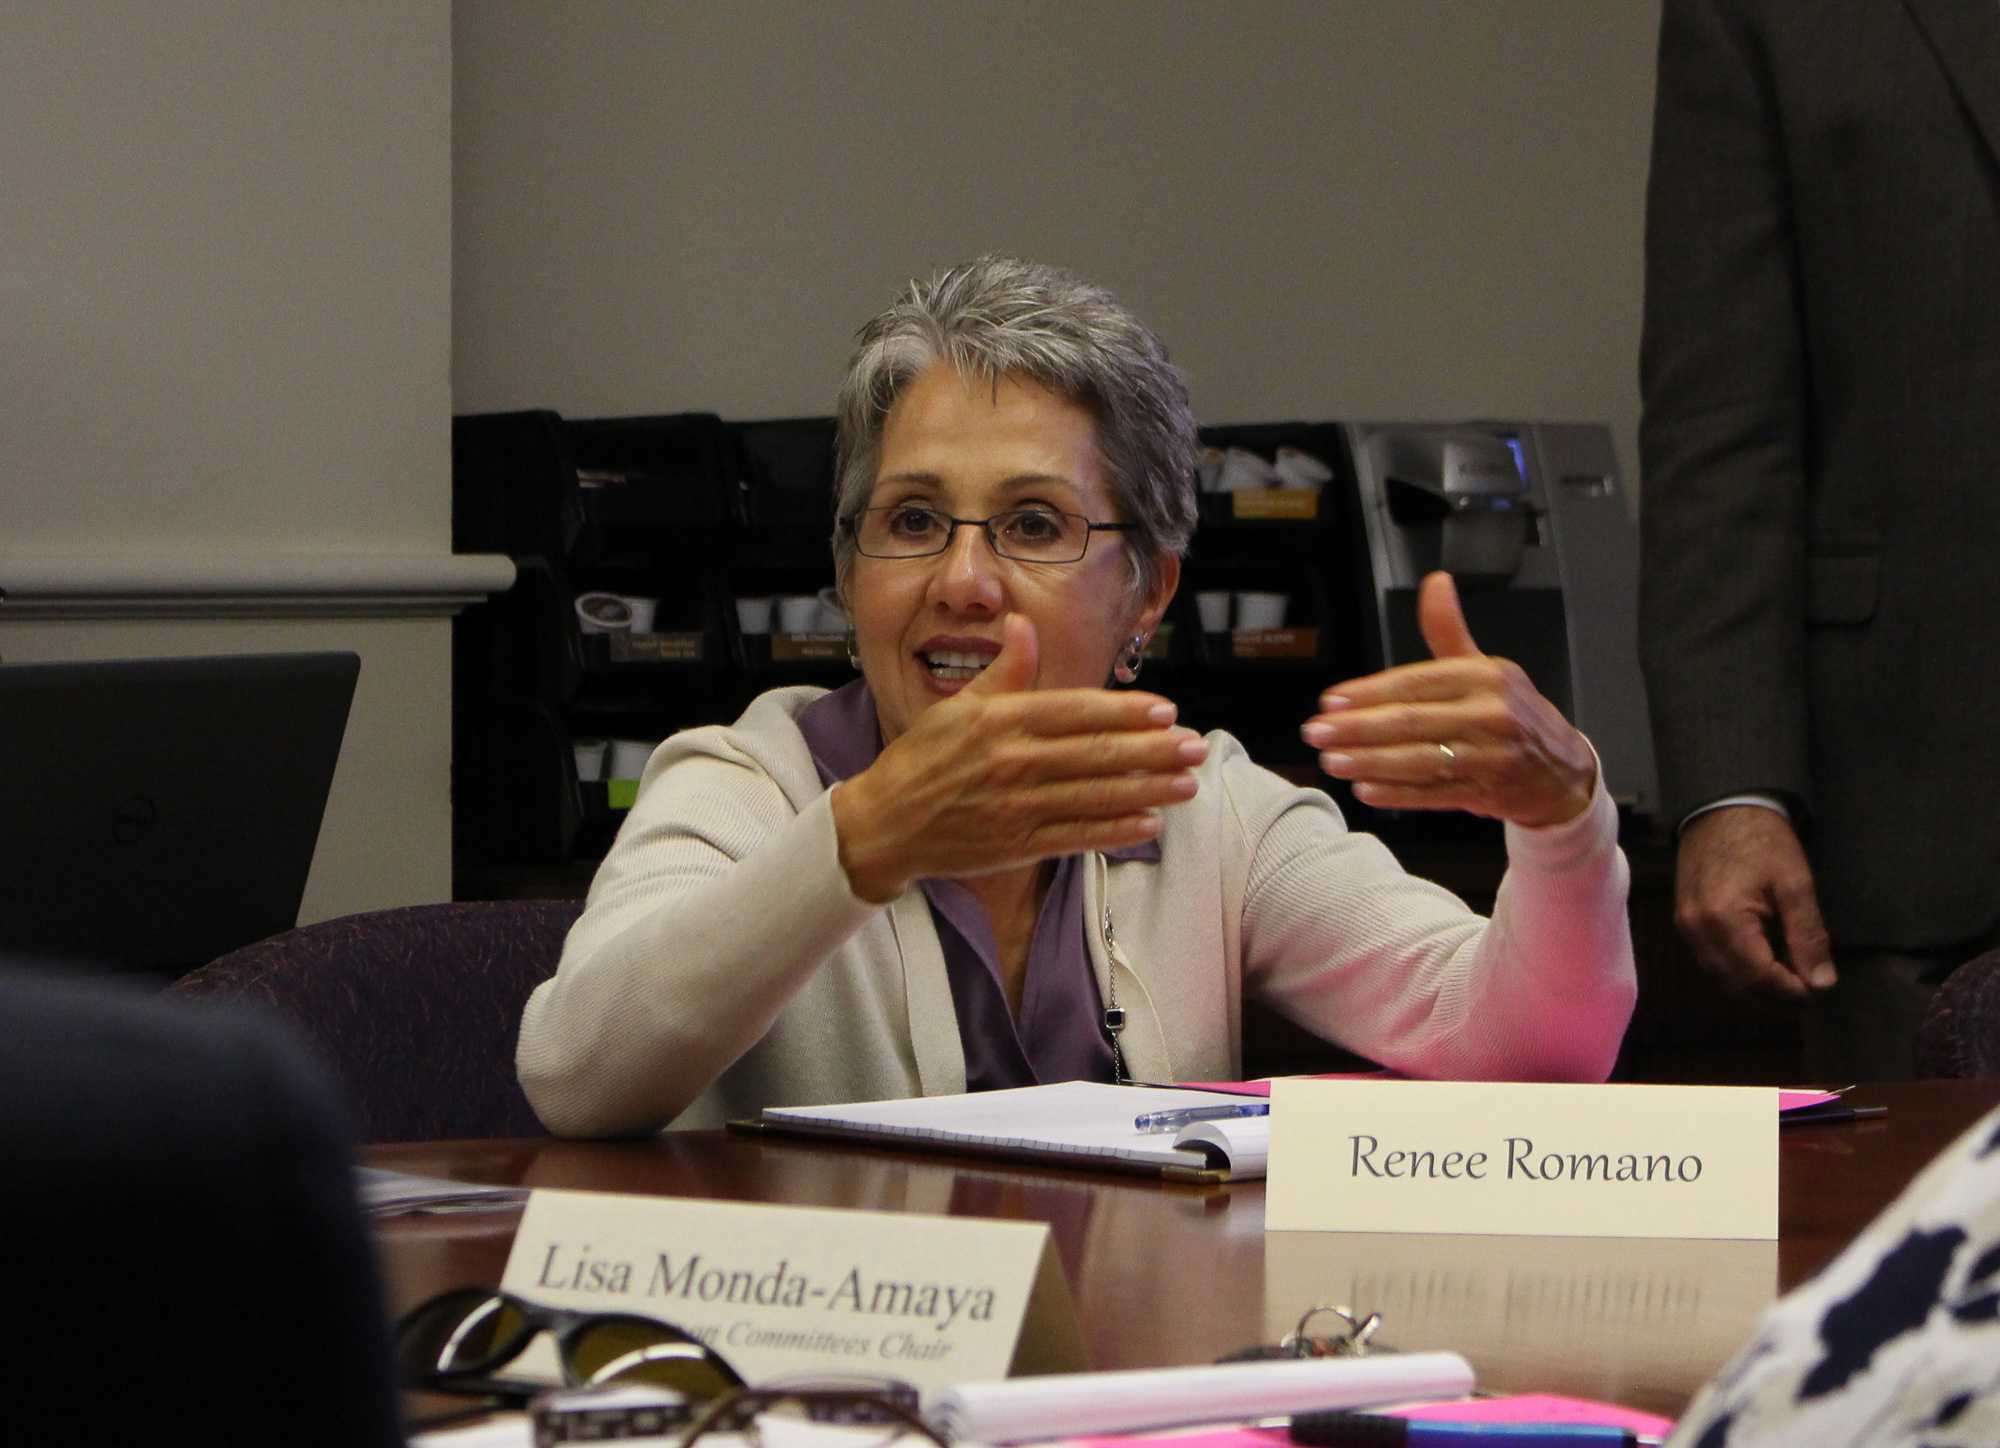 Vice Chancellor Renee Romano speaks at the Senate Executive Committee meeting on Monday, October 3. Romano has decided to repeat the student trustee election, which will be held from April 26 to April 27.